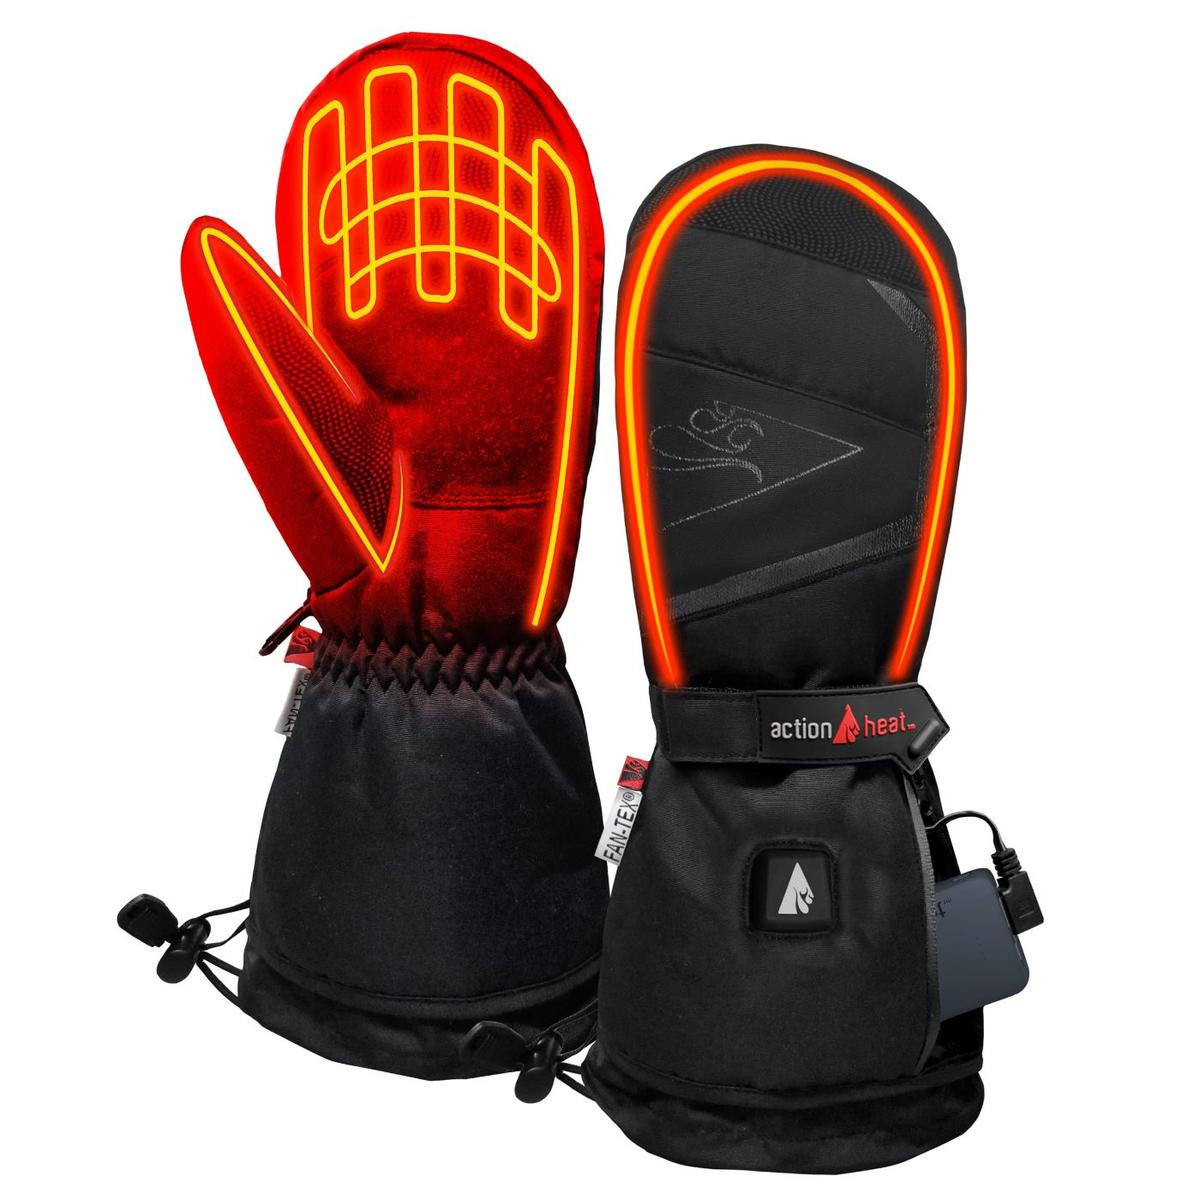 ActionHeat 5V Battery Heated Mittens - Back